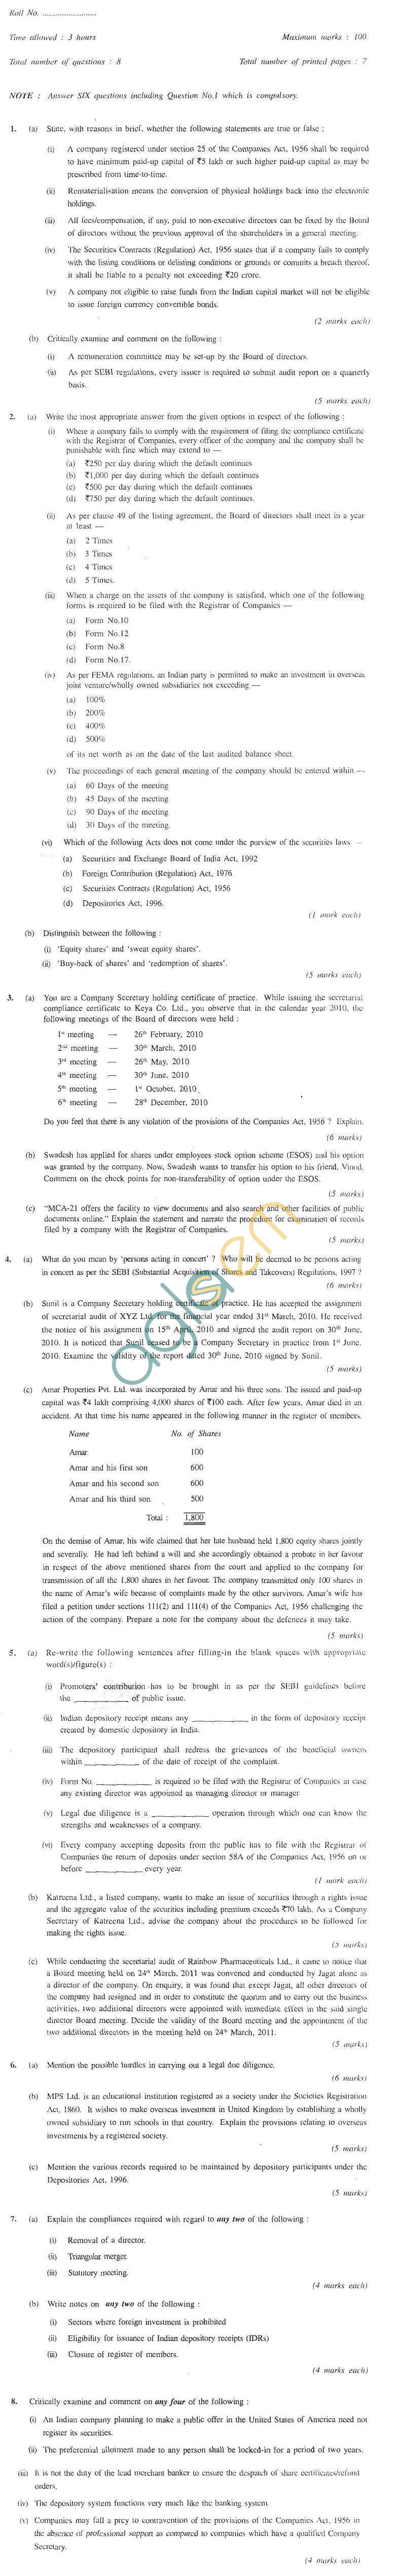 CS Professional Question Papers Jun 2011 - Governance Business Ethics and Sustainability Module IV